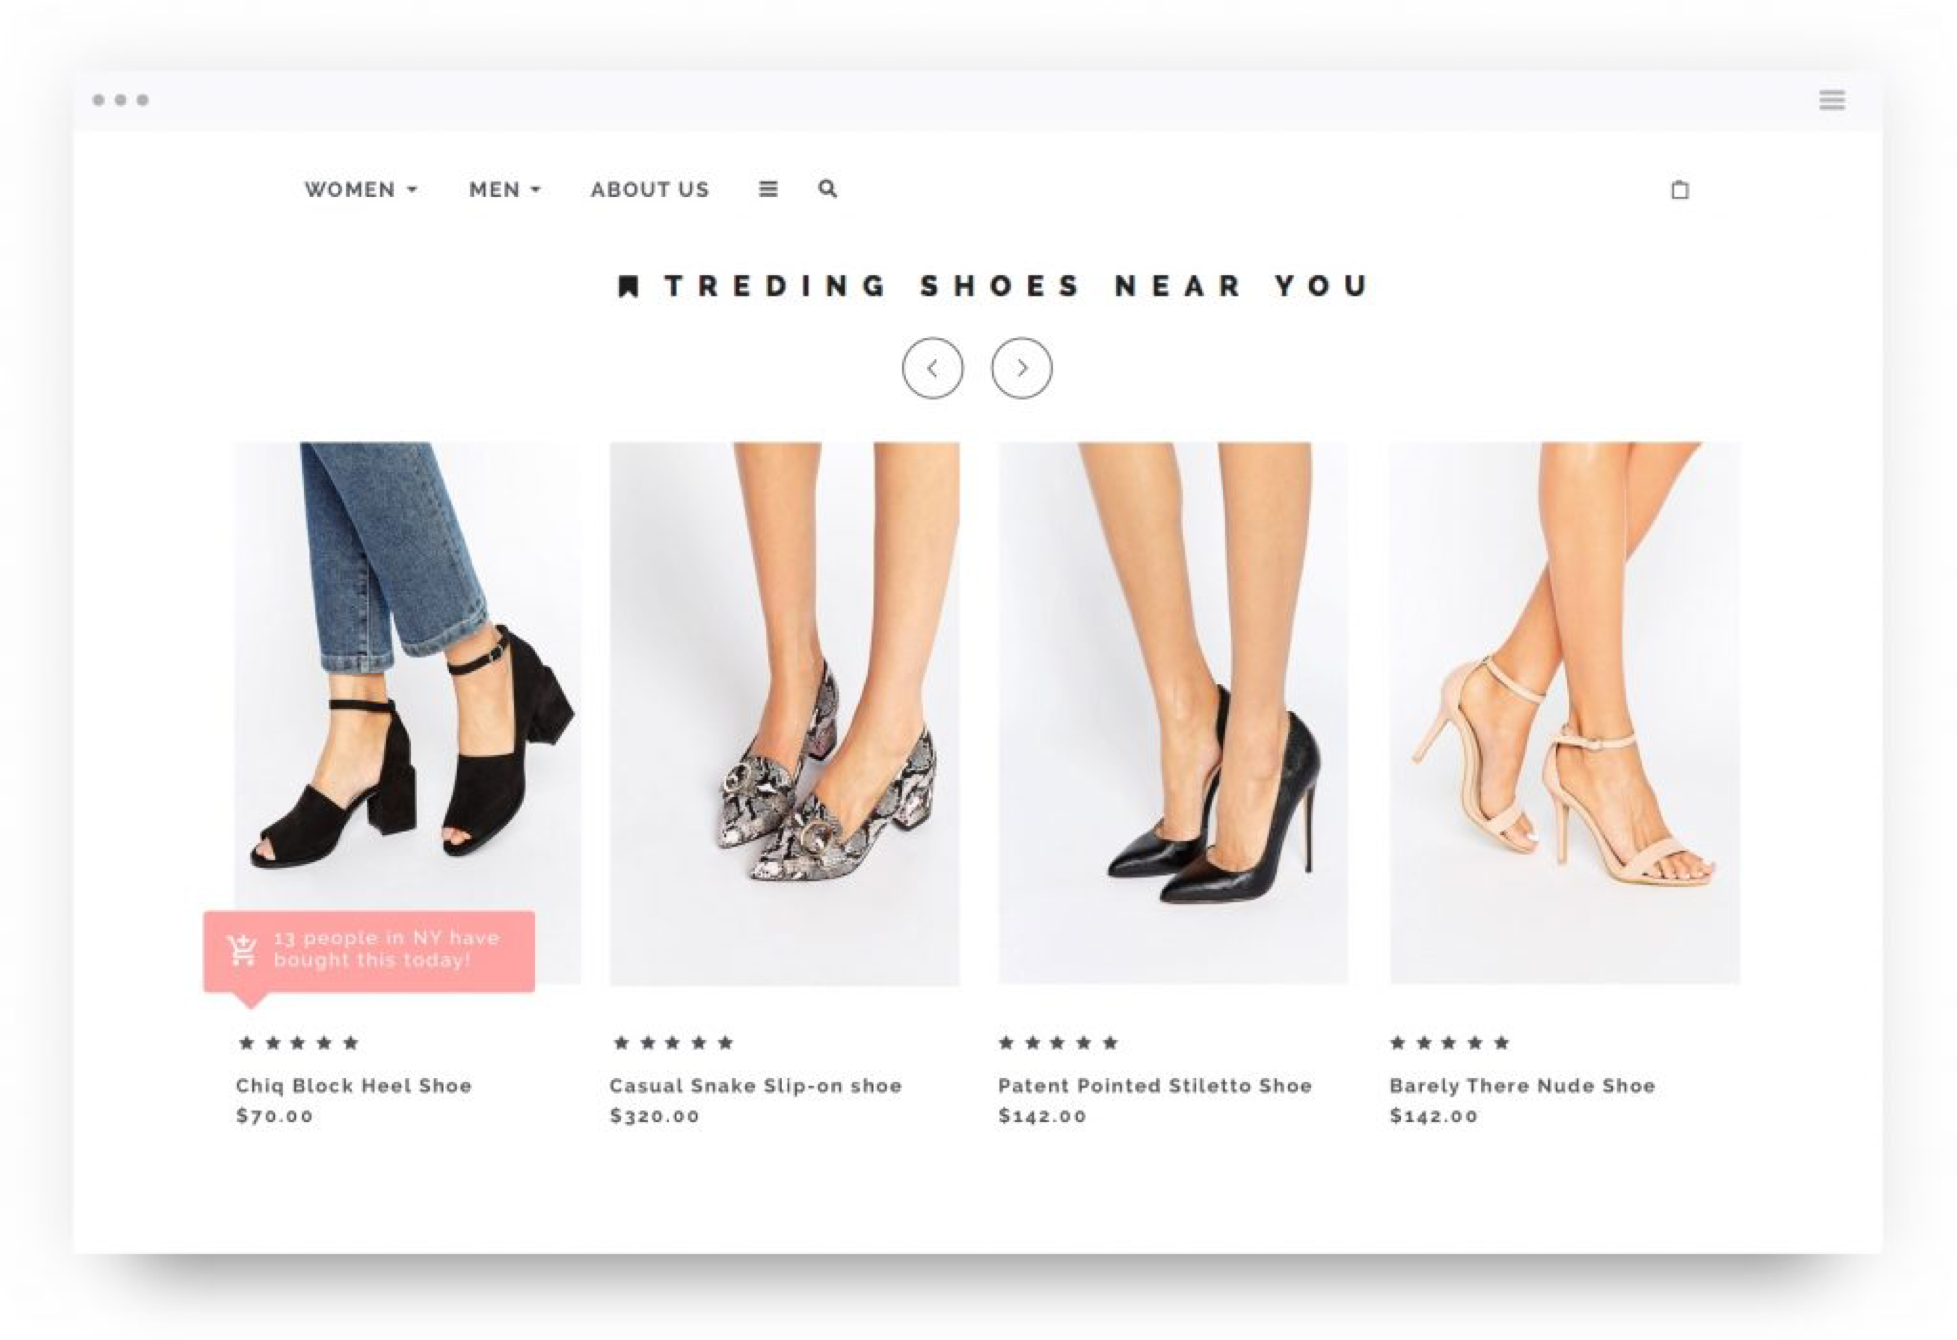 Social proof - Fashion personalization strategy